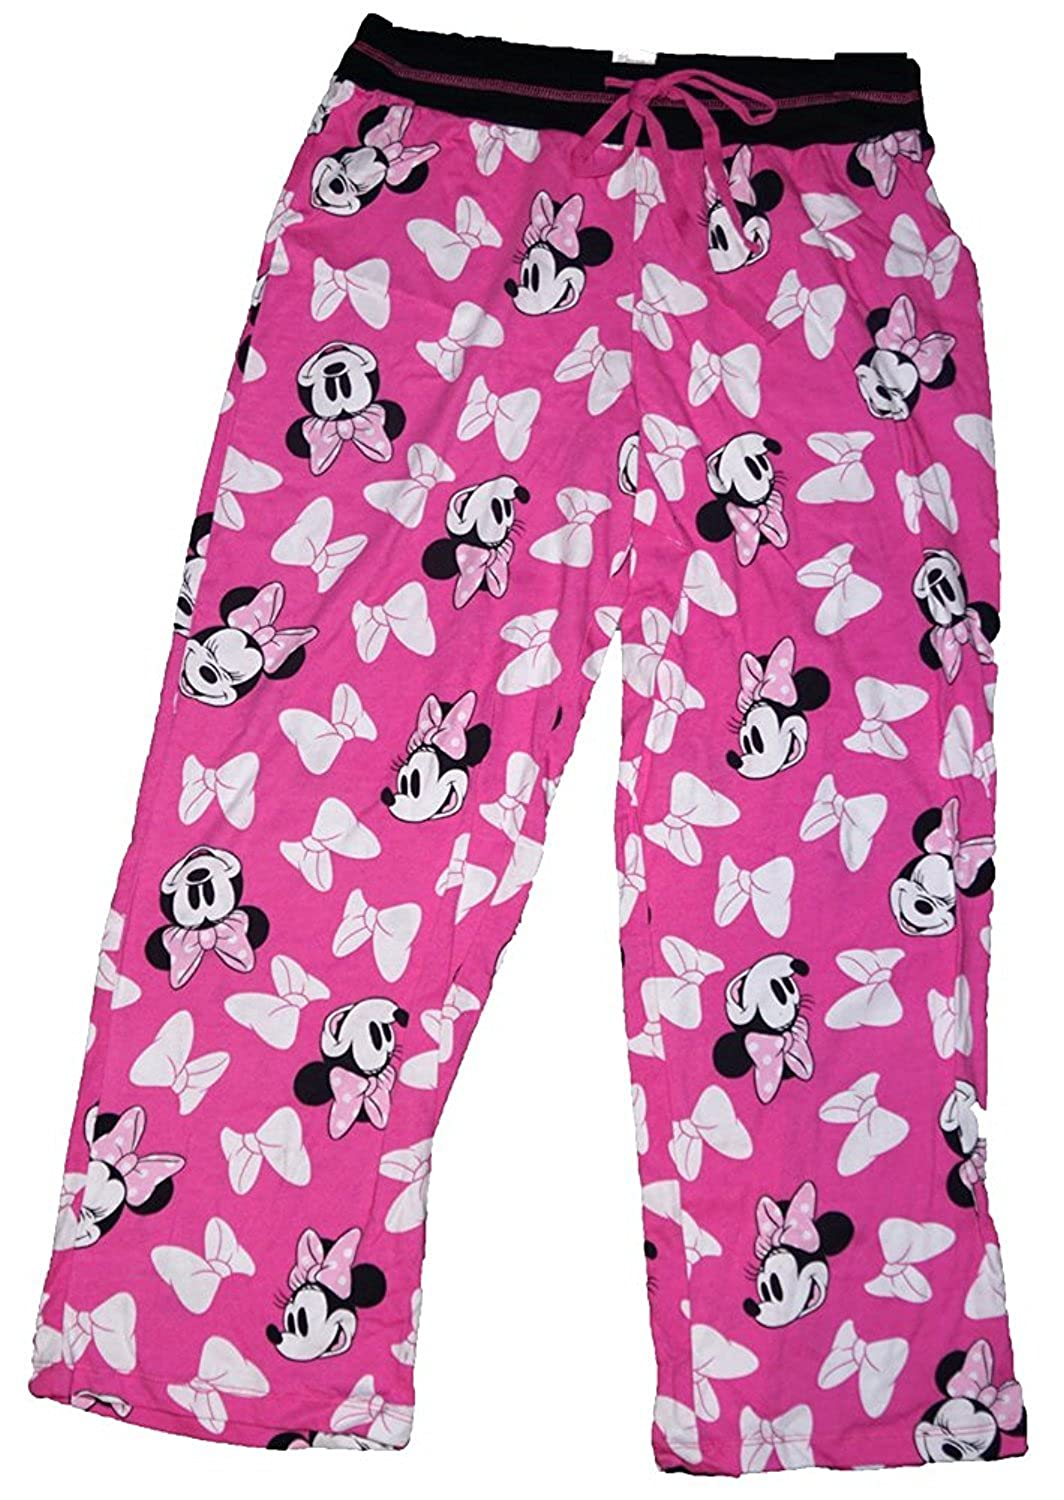 Disney Minnie Mouse Womens Pajama Pant with Minnie Face and Bow Print Pink